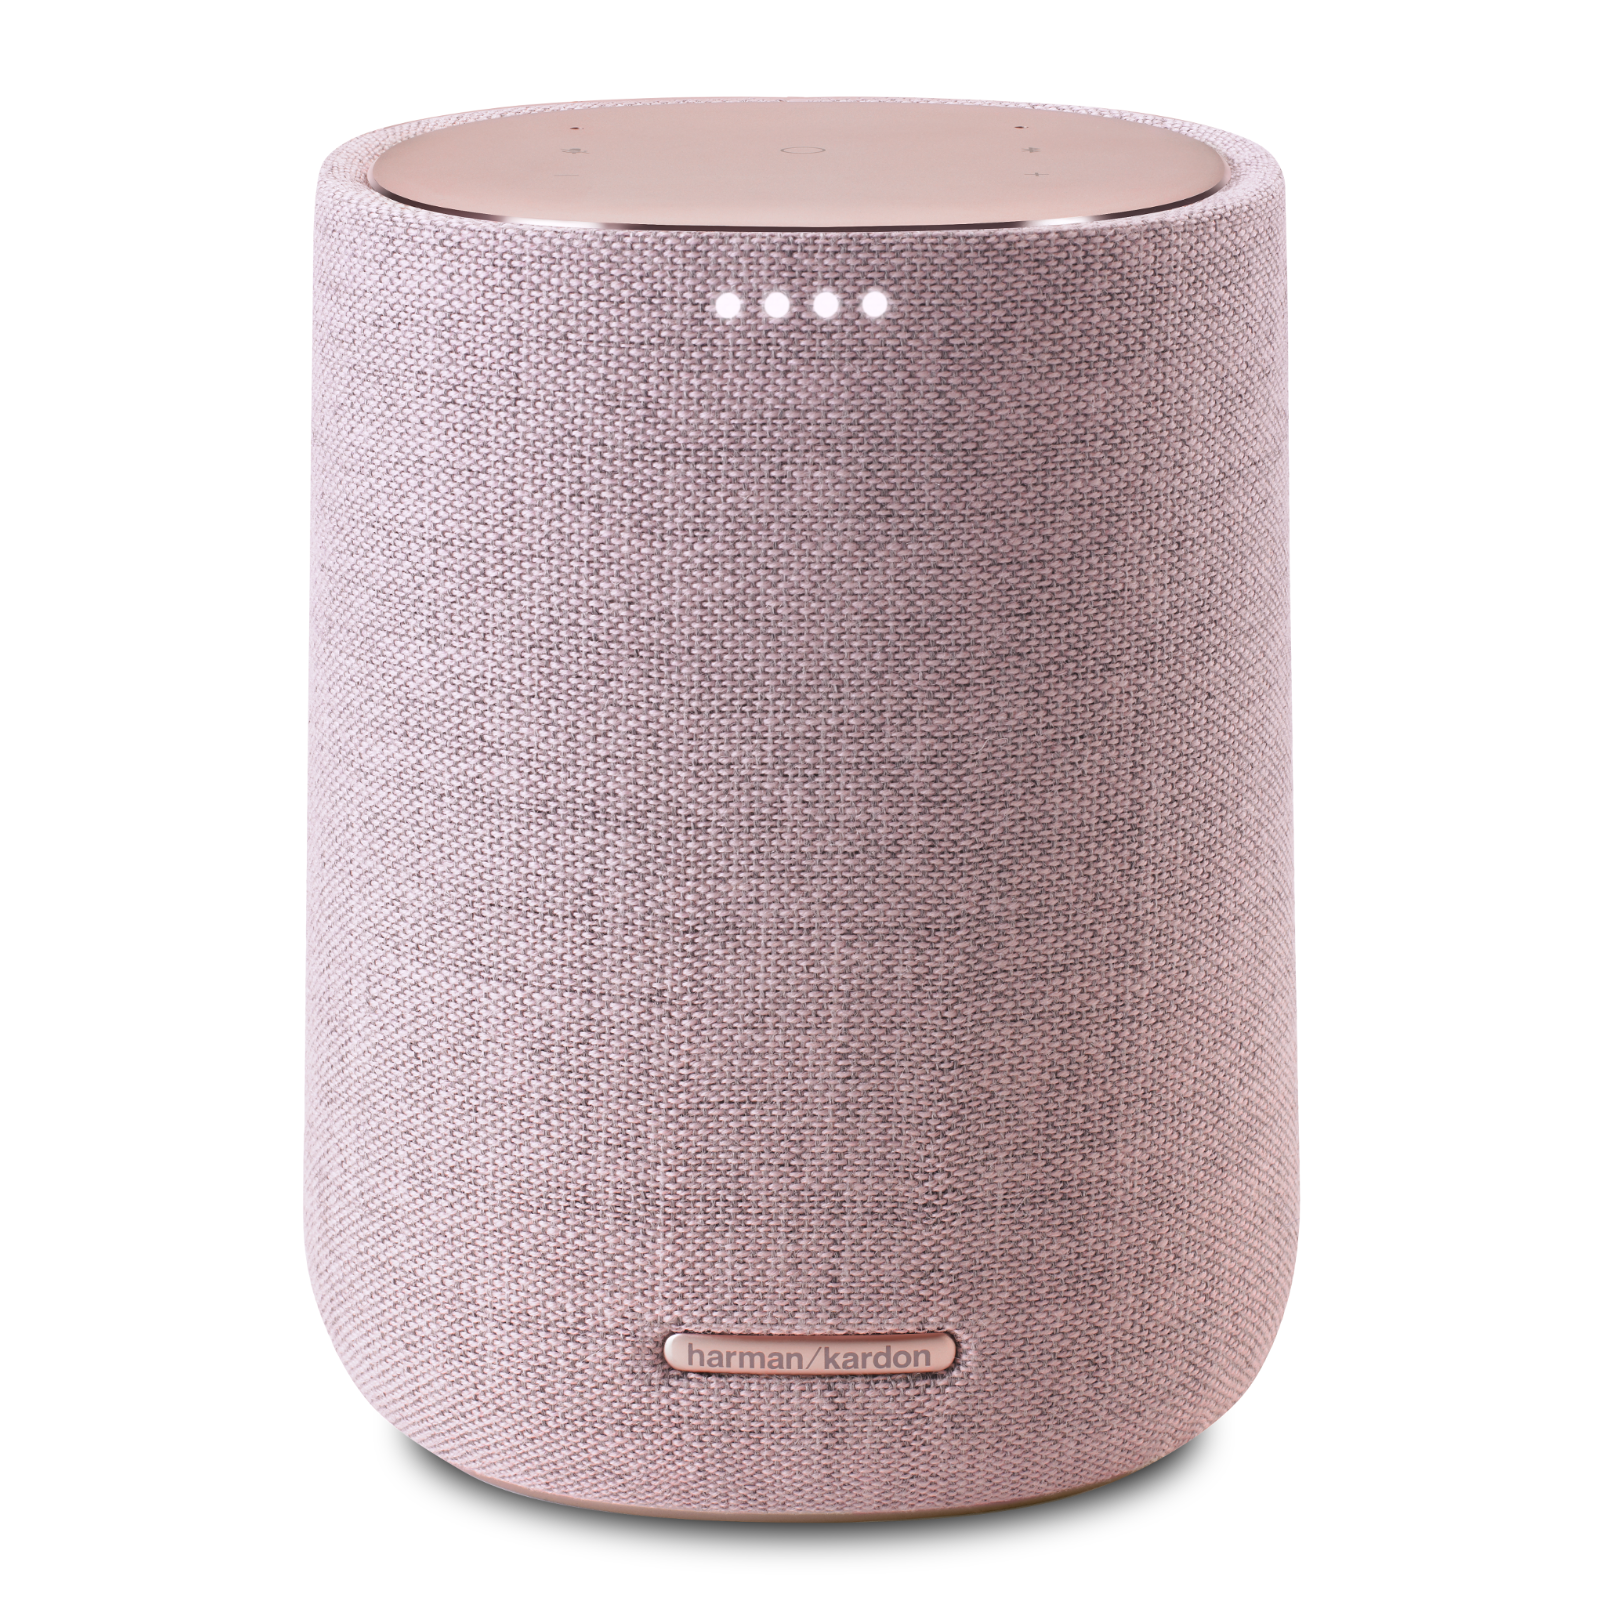 Harman Kardon Citation One MKII - Pink - All-in-one smart speaker with room-filling sound - Hero